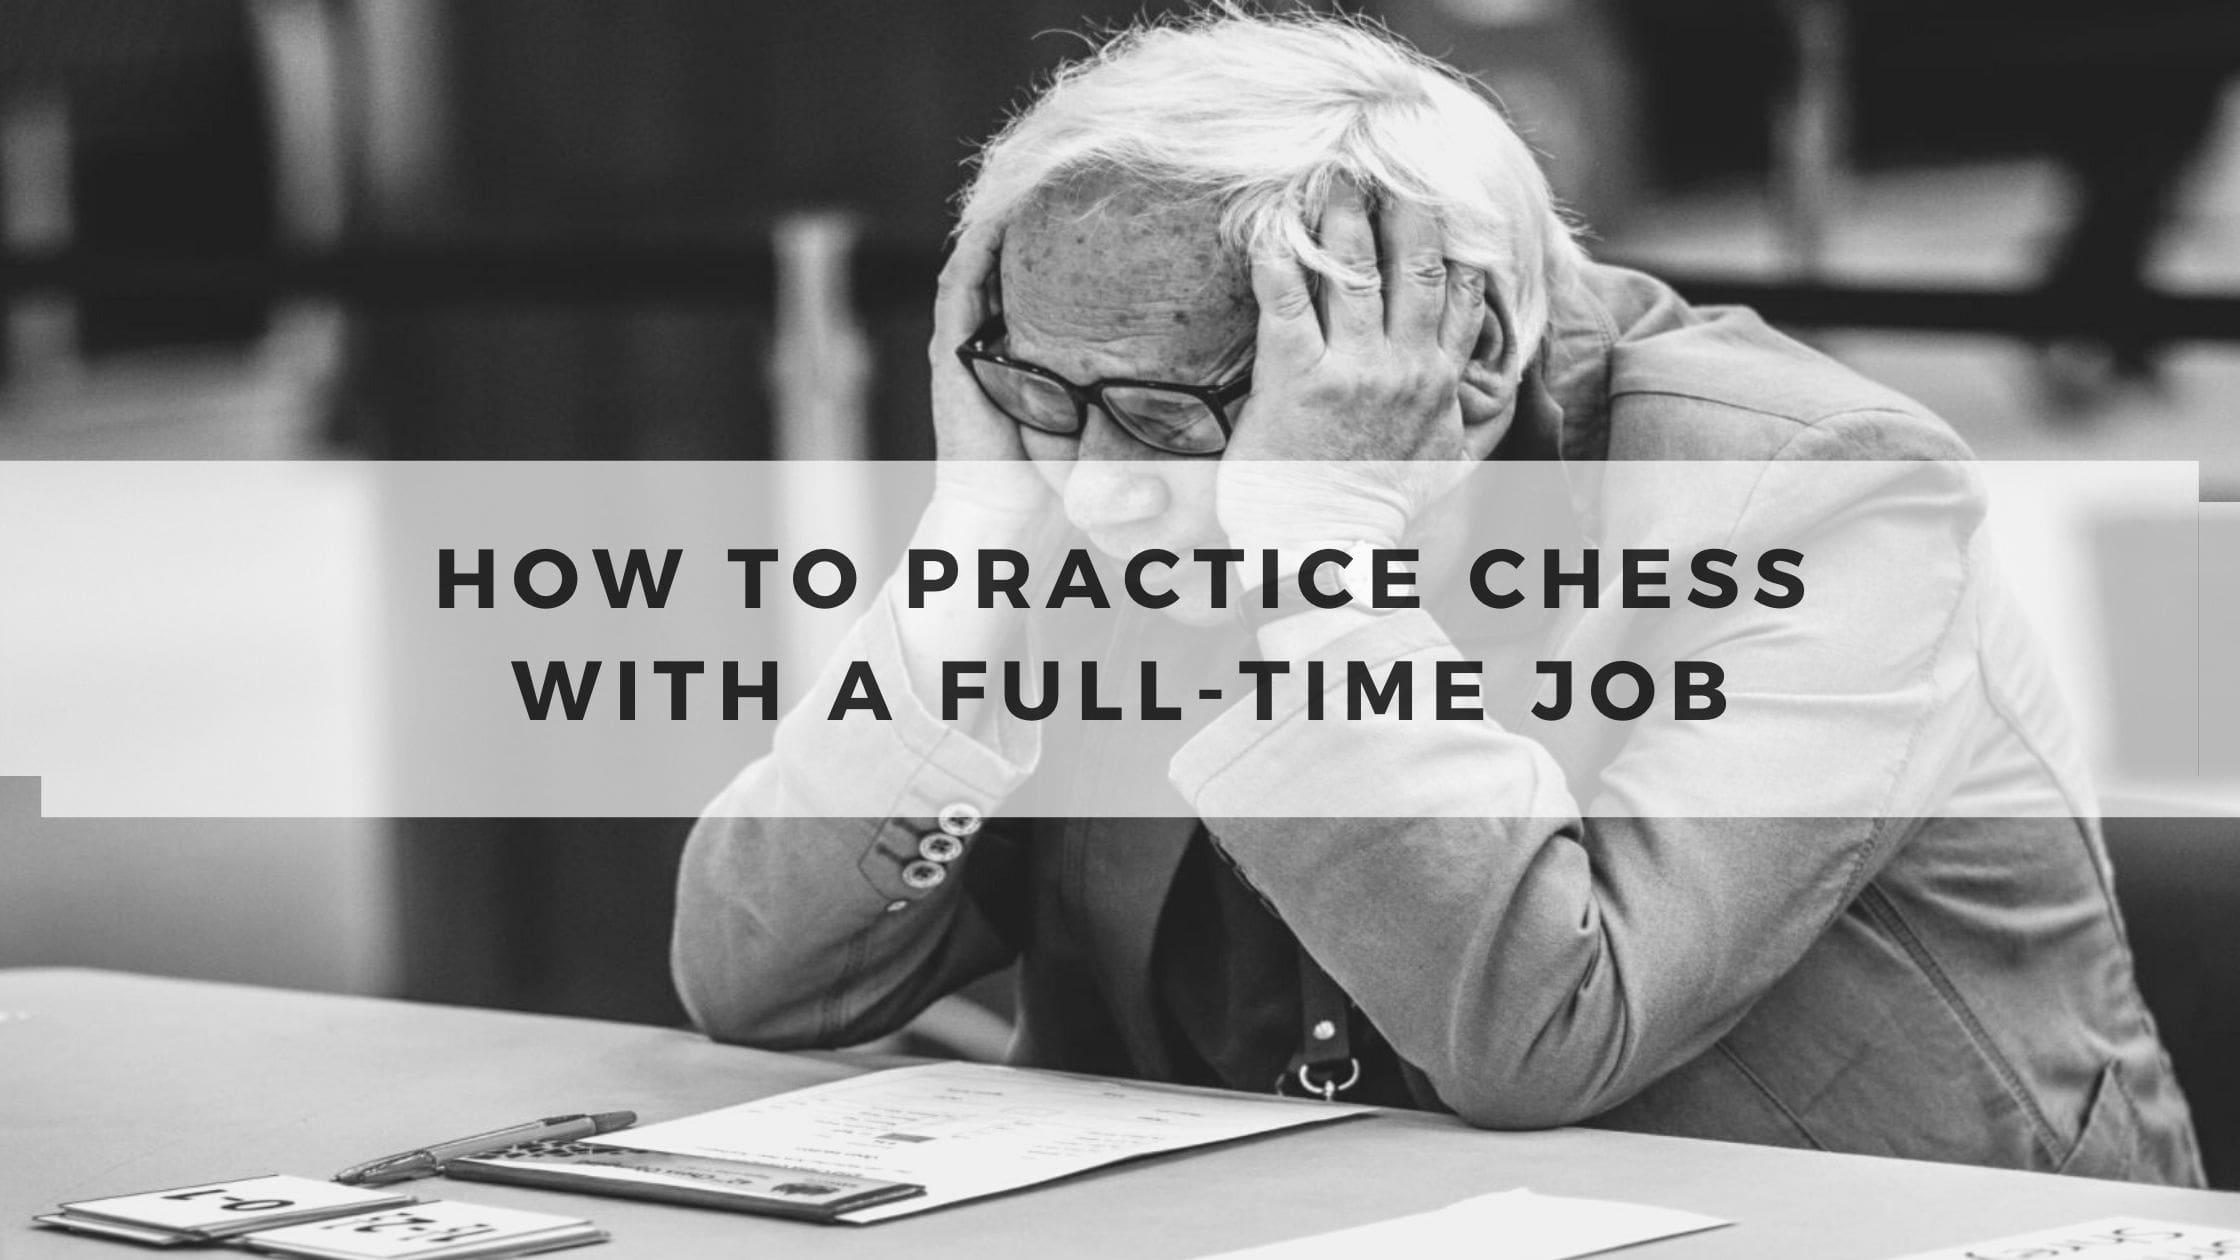 How to Practice Chess with a Full-Time Job